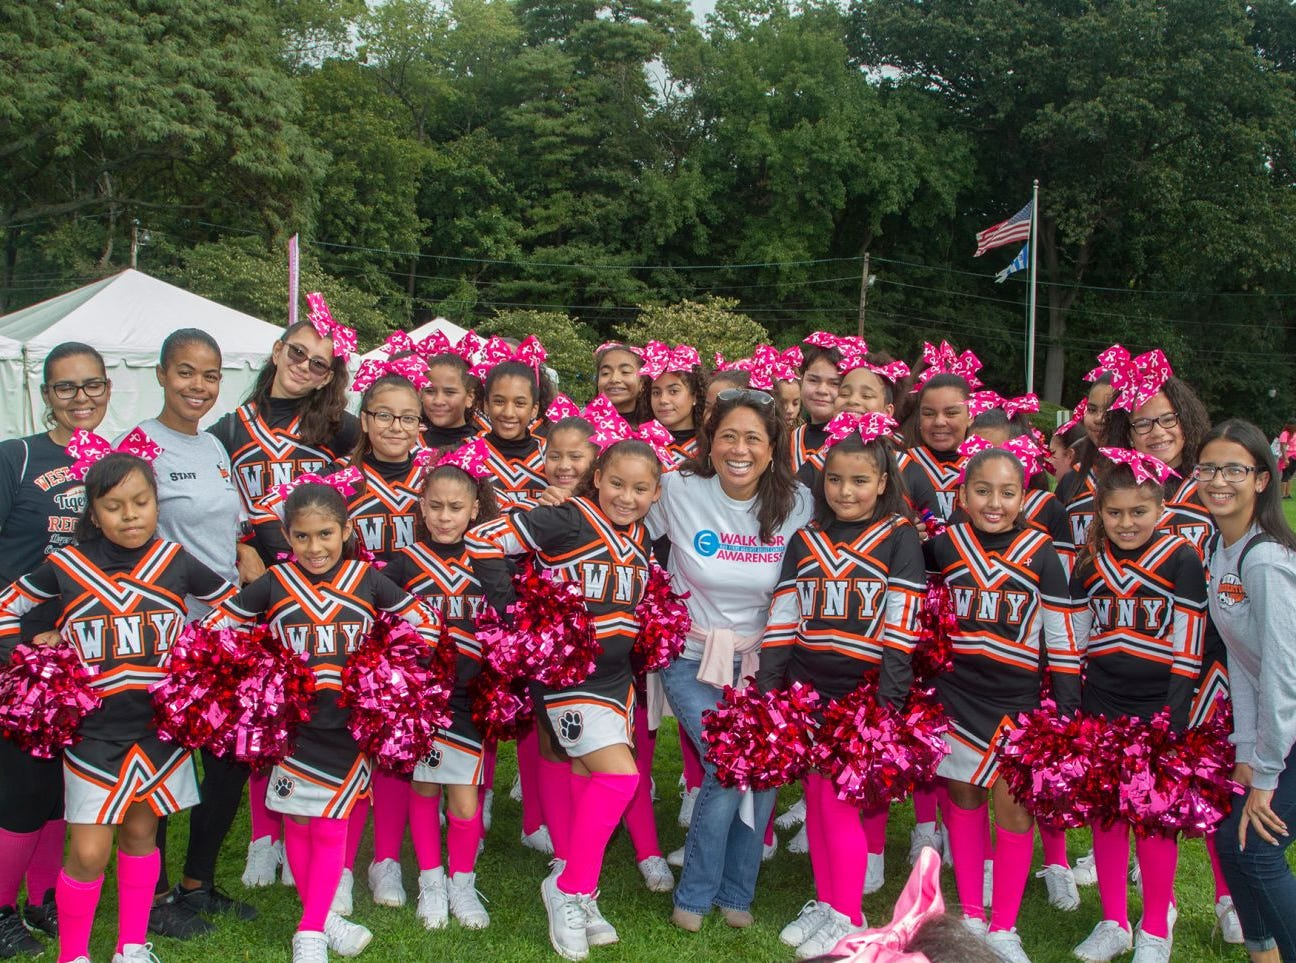 West New York Cheerleaders and Nina Pineda. Englewood Health Foundation hosted its 2018 Walk for Awareness and Susan Lucianna Memorial Dog Walk dedicated in memory of Walk for Awareness co-founder Paul Fader, Esq. 10/07/2018